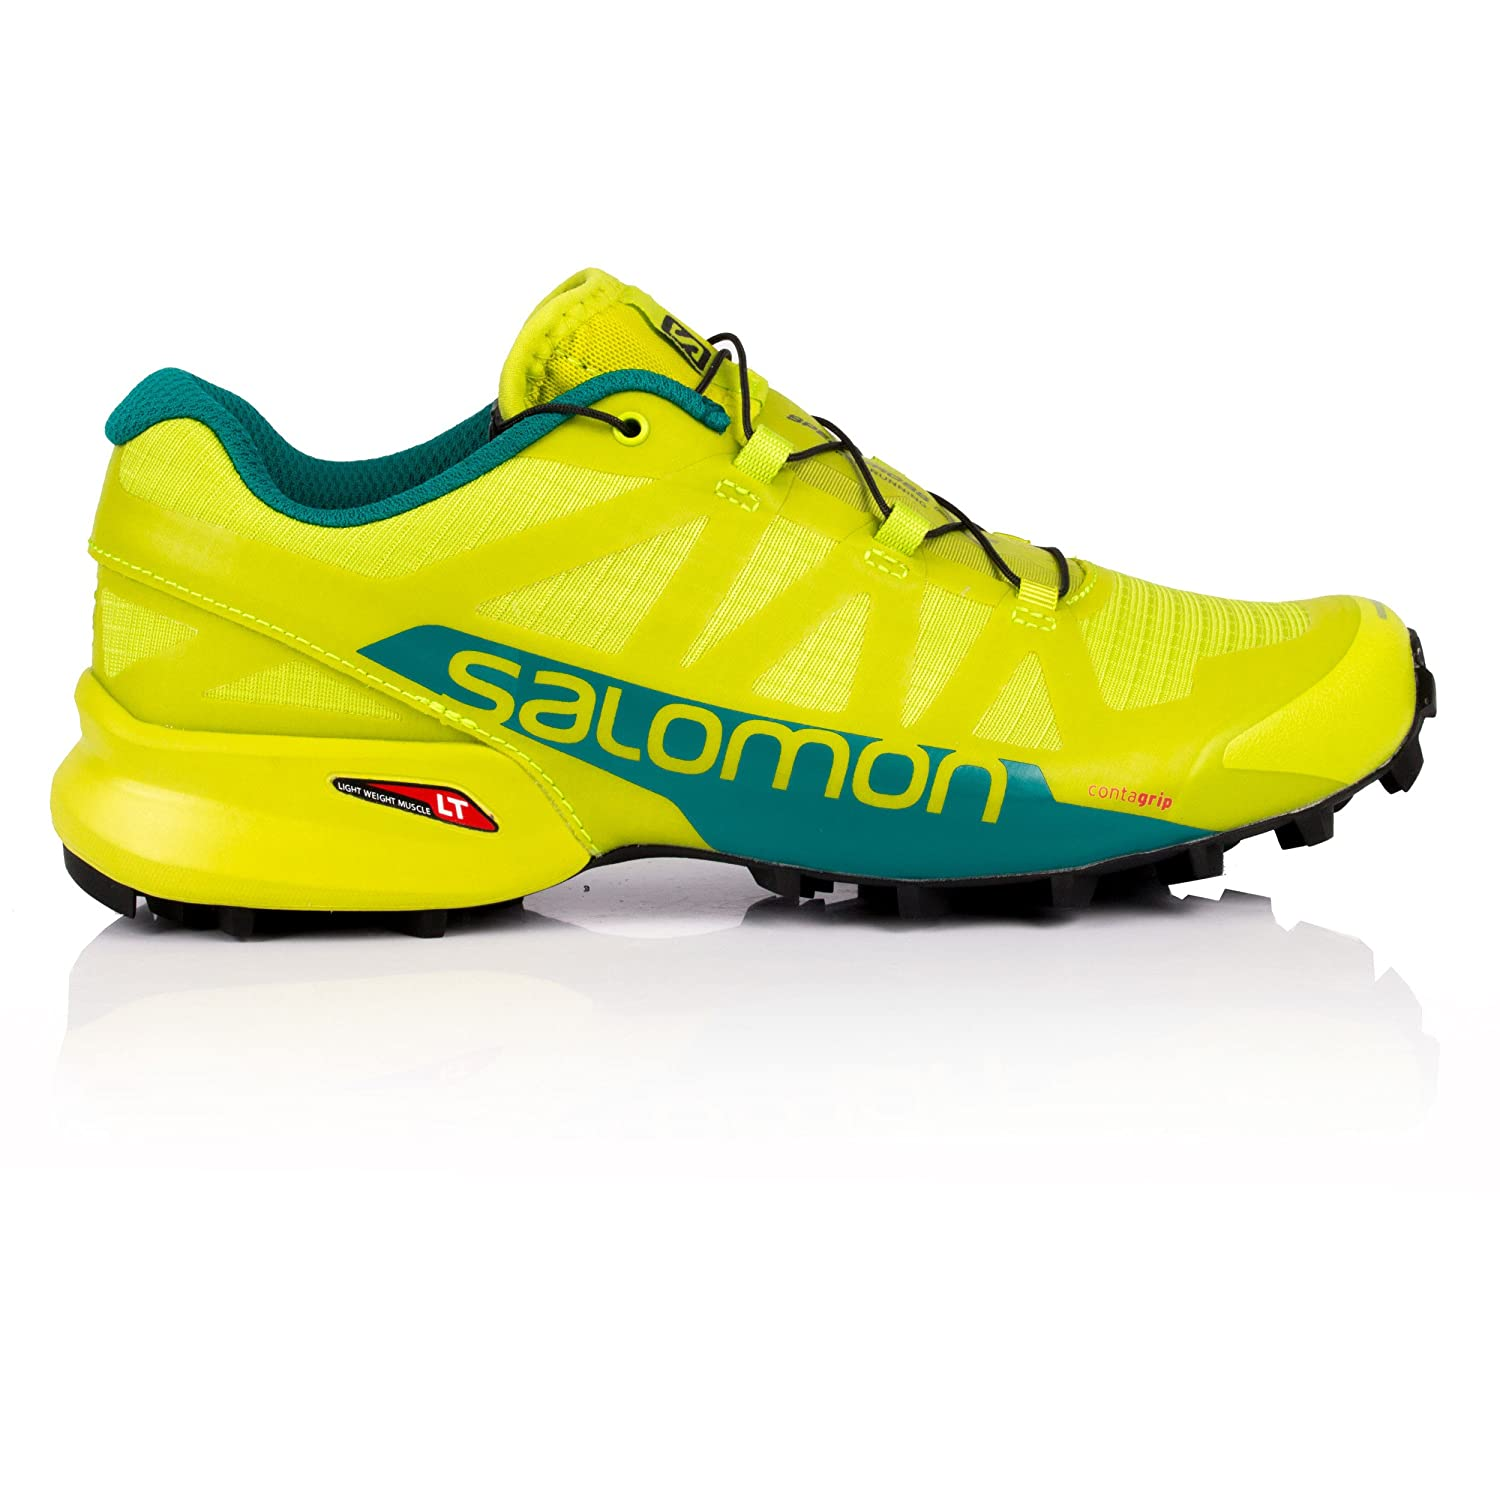 225b019f33a4 Salomon Men s Speedcross Pro 2 Trail Running Shoes  Amazon.co.uk  Shoes    Bags